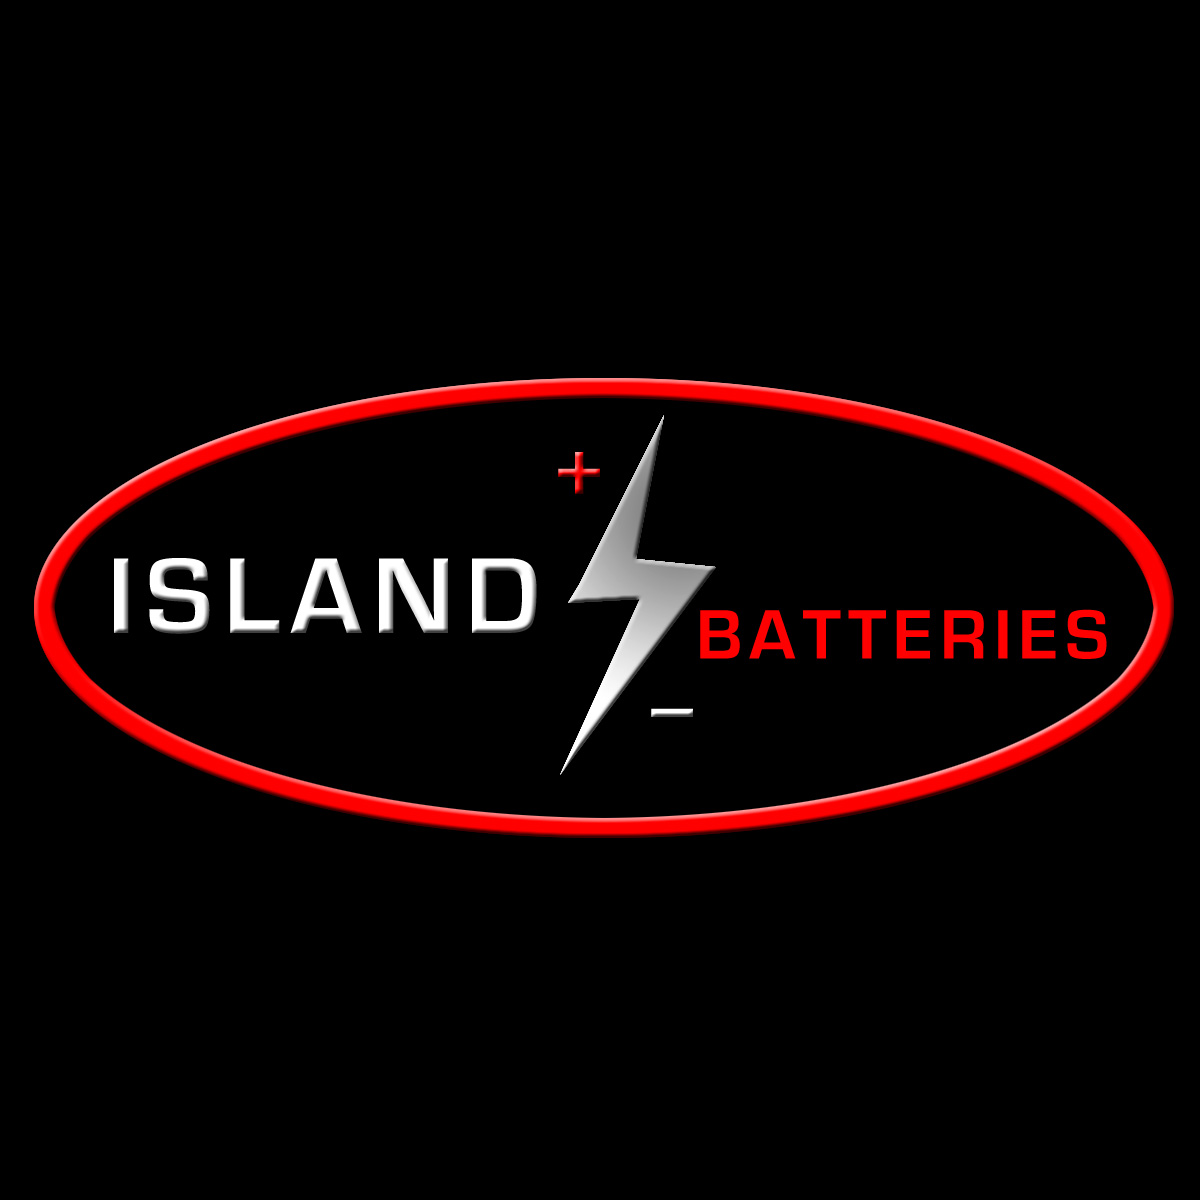 Logo Design by double-take - Entry No. 70 in the Logo Design Contest Fun Logo Design for Island Batteries.